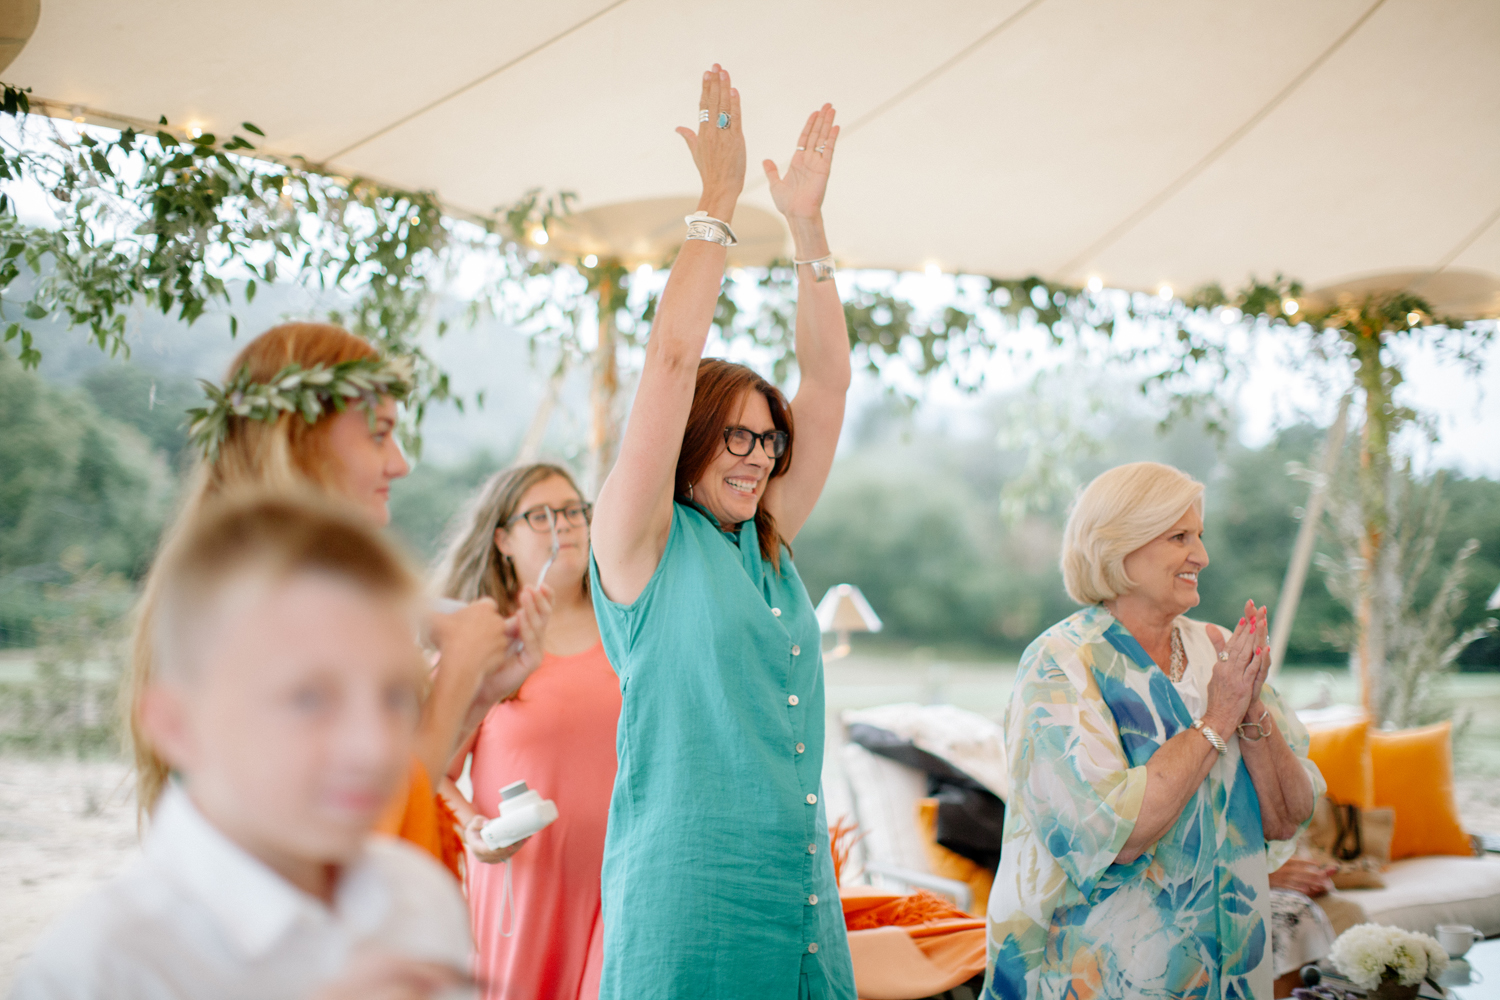 44-wedding-guest-laughter.jpg